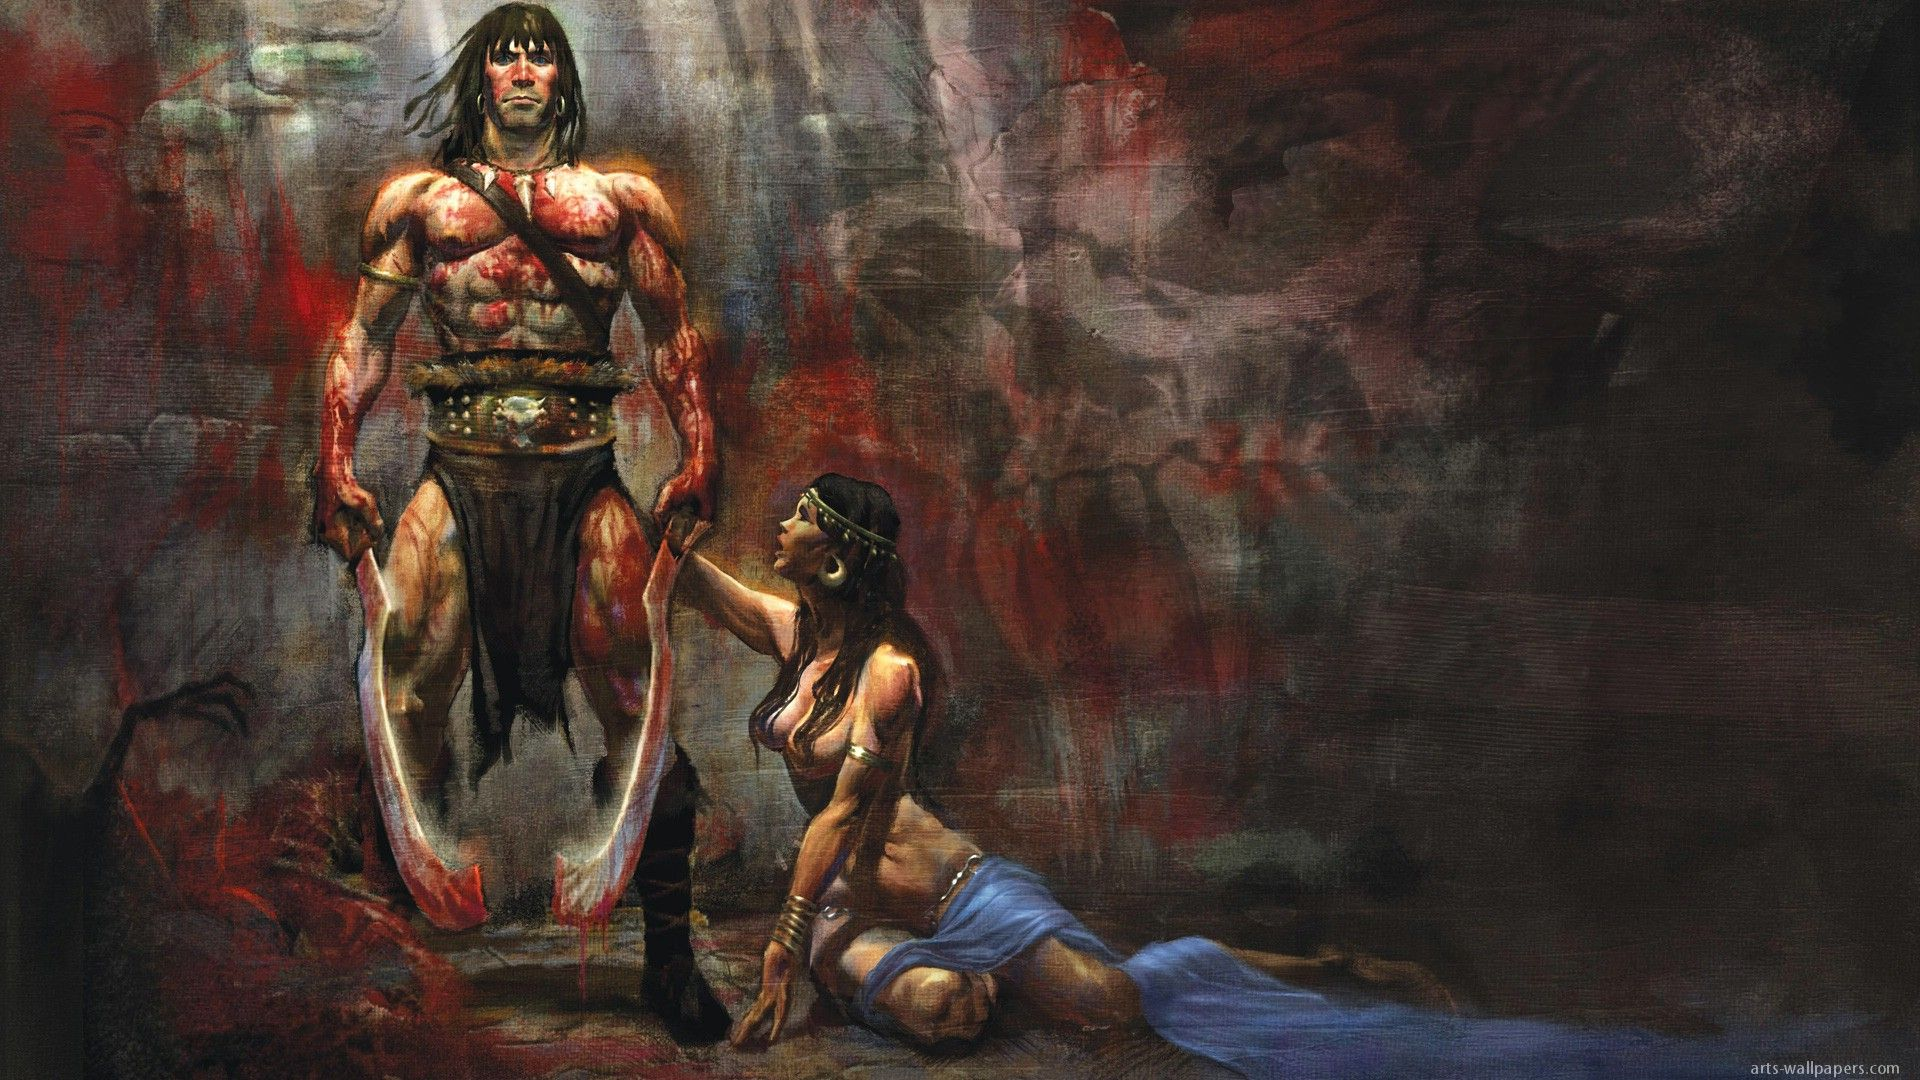 Conan The Barbarian Wallpaper 1920x1080